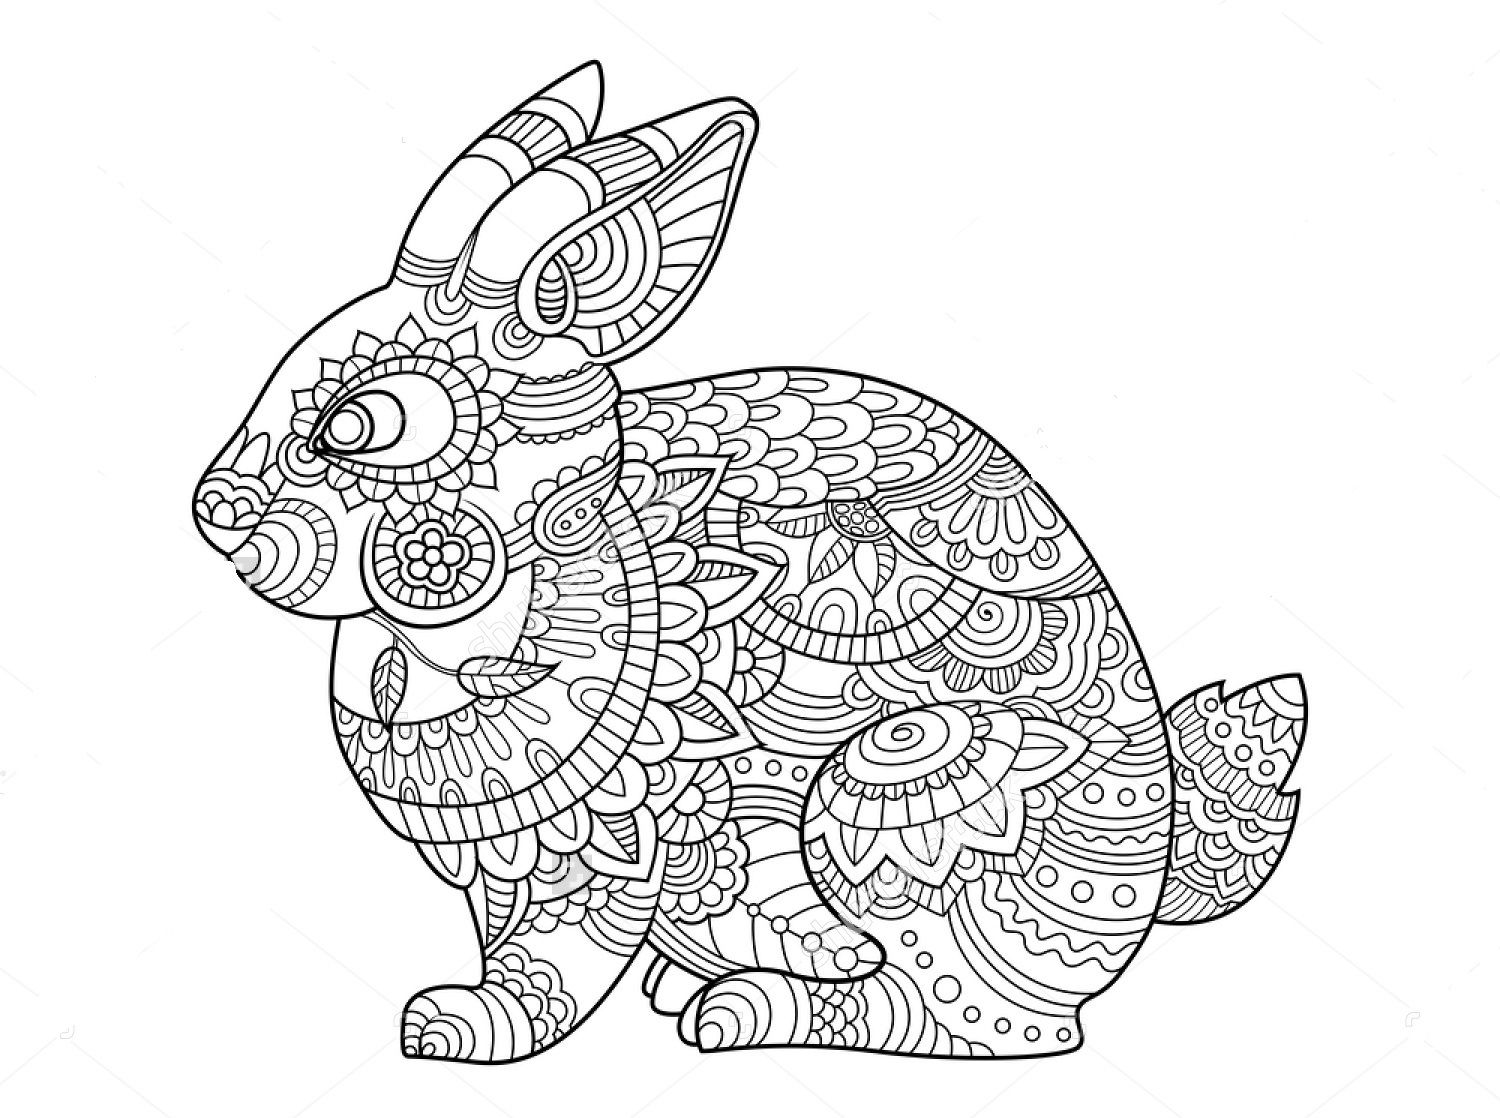 Zentangle Animal Coloring Pages Animal Coloring Pages Mandala Coloring Pages Mandala Coloring